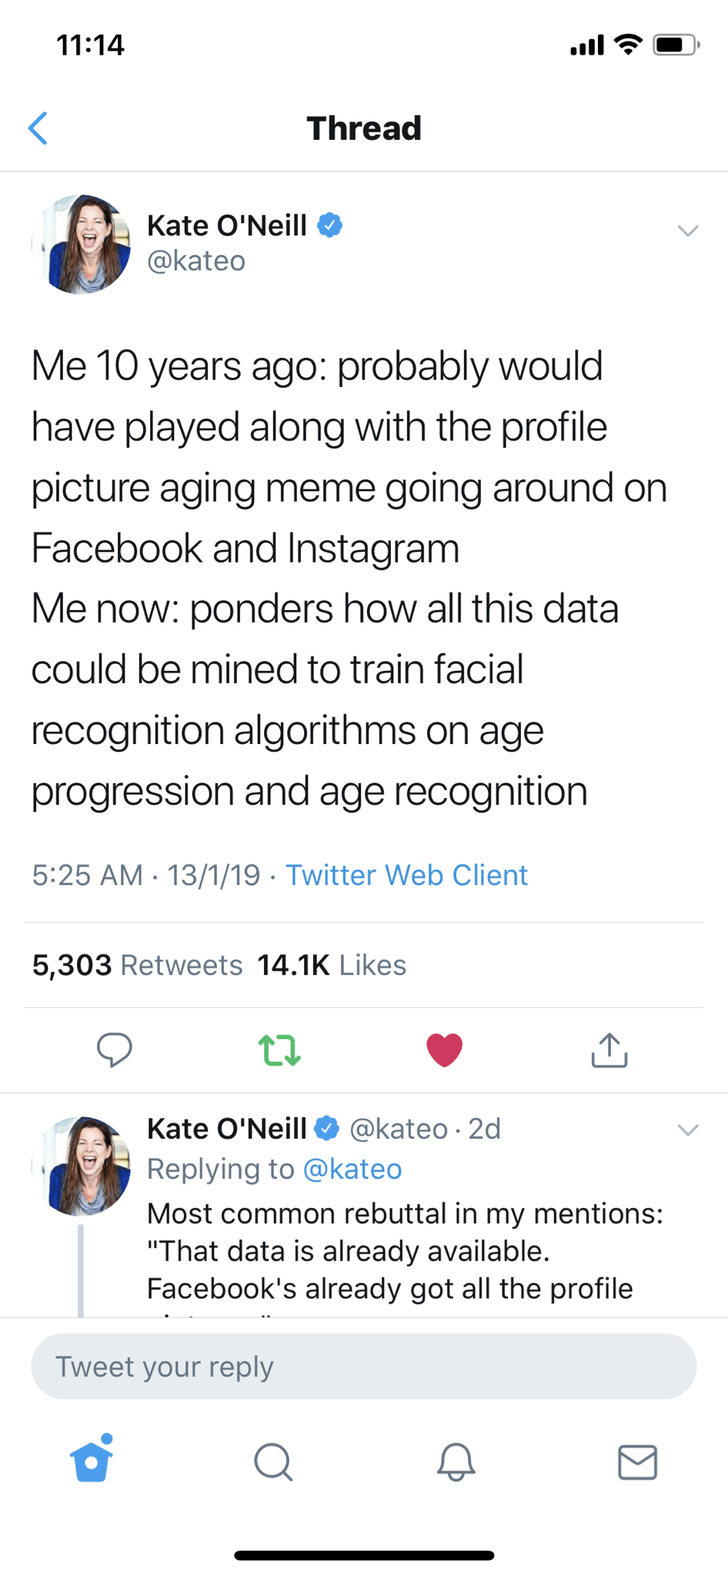 "Text - 11:14 Thread Kate O'Neill @kateo Me 10 years ago: probably would have played along with the profile picture aging meme going around on Facebook and Instagram Me now: ponders how all this data could be mined to train facial recognition algorithms on age progression and age recognition 5:25 AM 13/1/19 Twitter Web Client 5,303 Retweets 14.1K Likes Kate O'Neill @kateo 2d Replying to @kateo Most common rebuttal in my mentions: ""That data is already available. Facebook's already got all the pro"